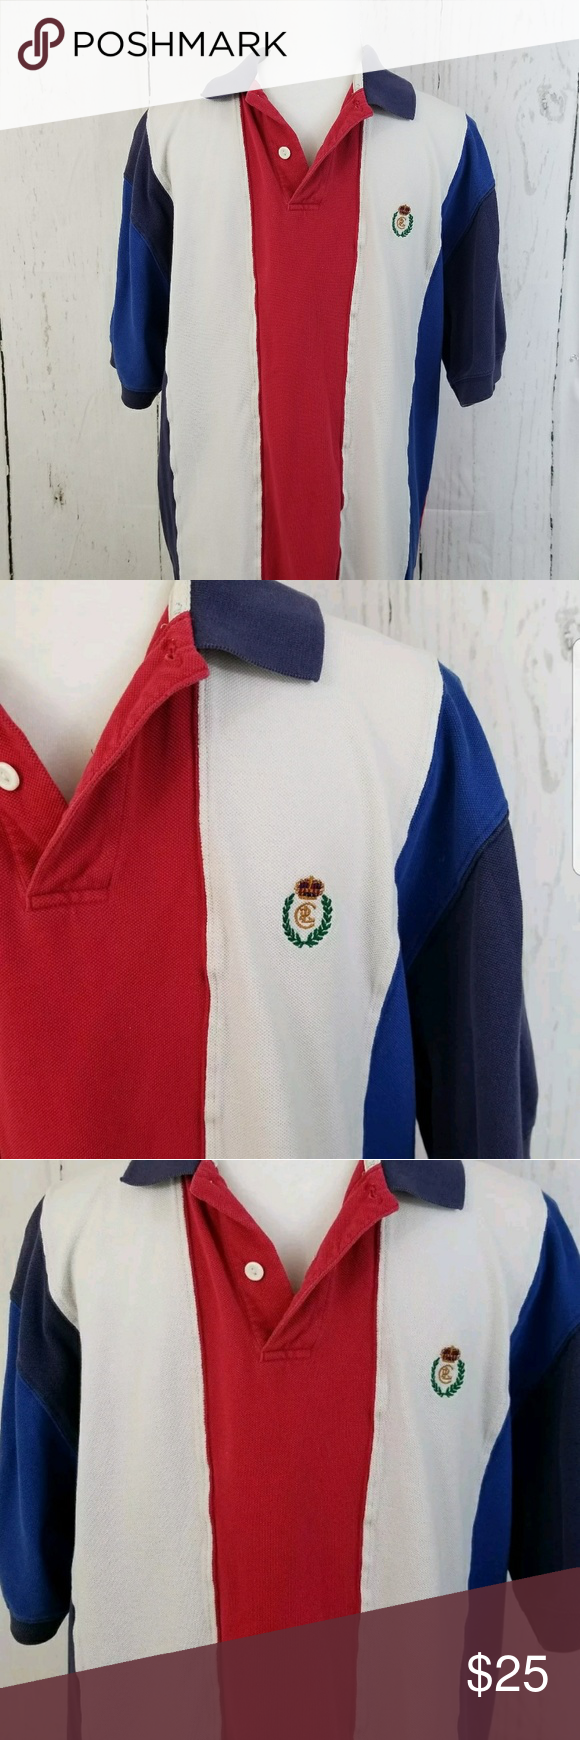 1ae7f69e952 ... coupon code for vintage chaps ralph lauren polo shirt mens large  vintage chaps ralph lauren red